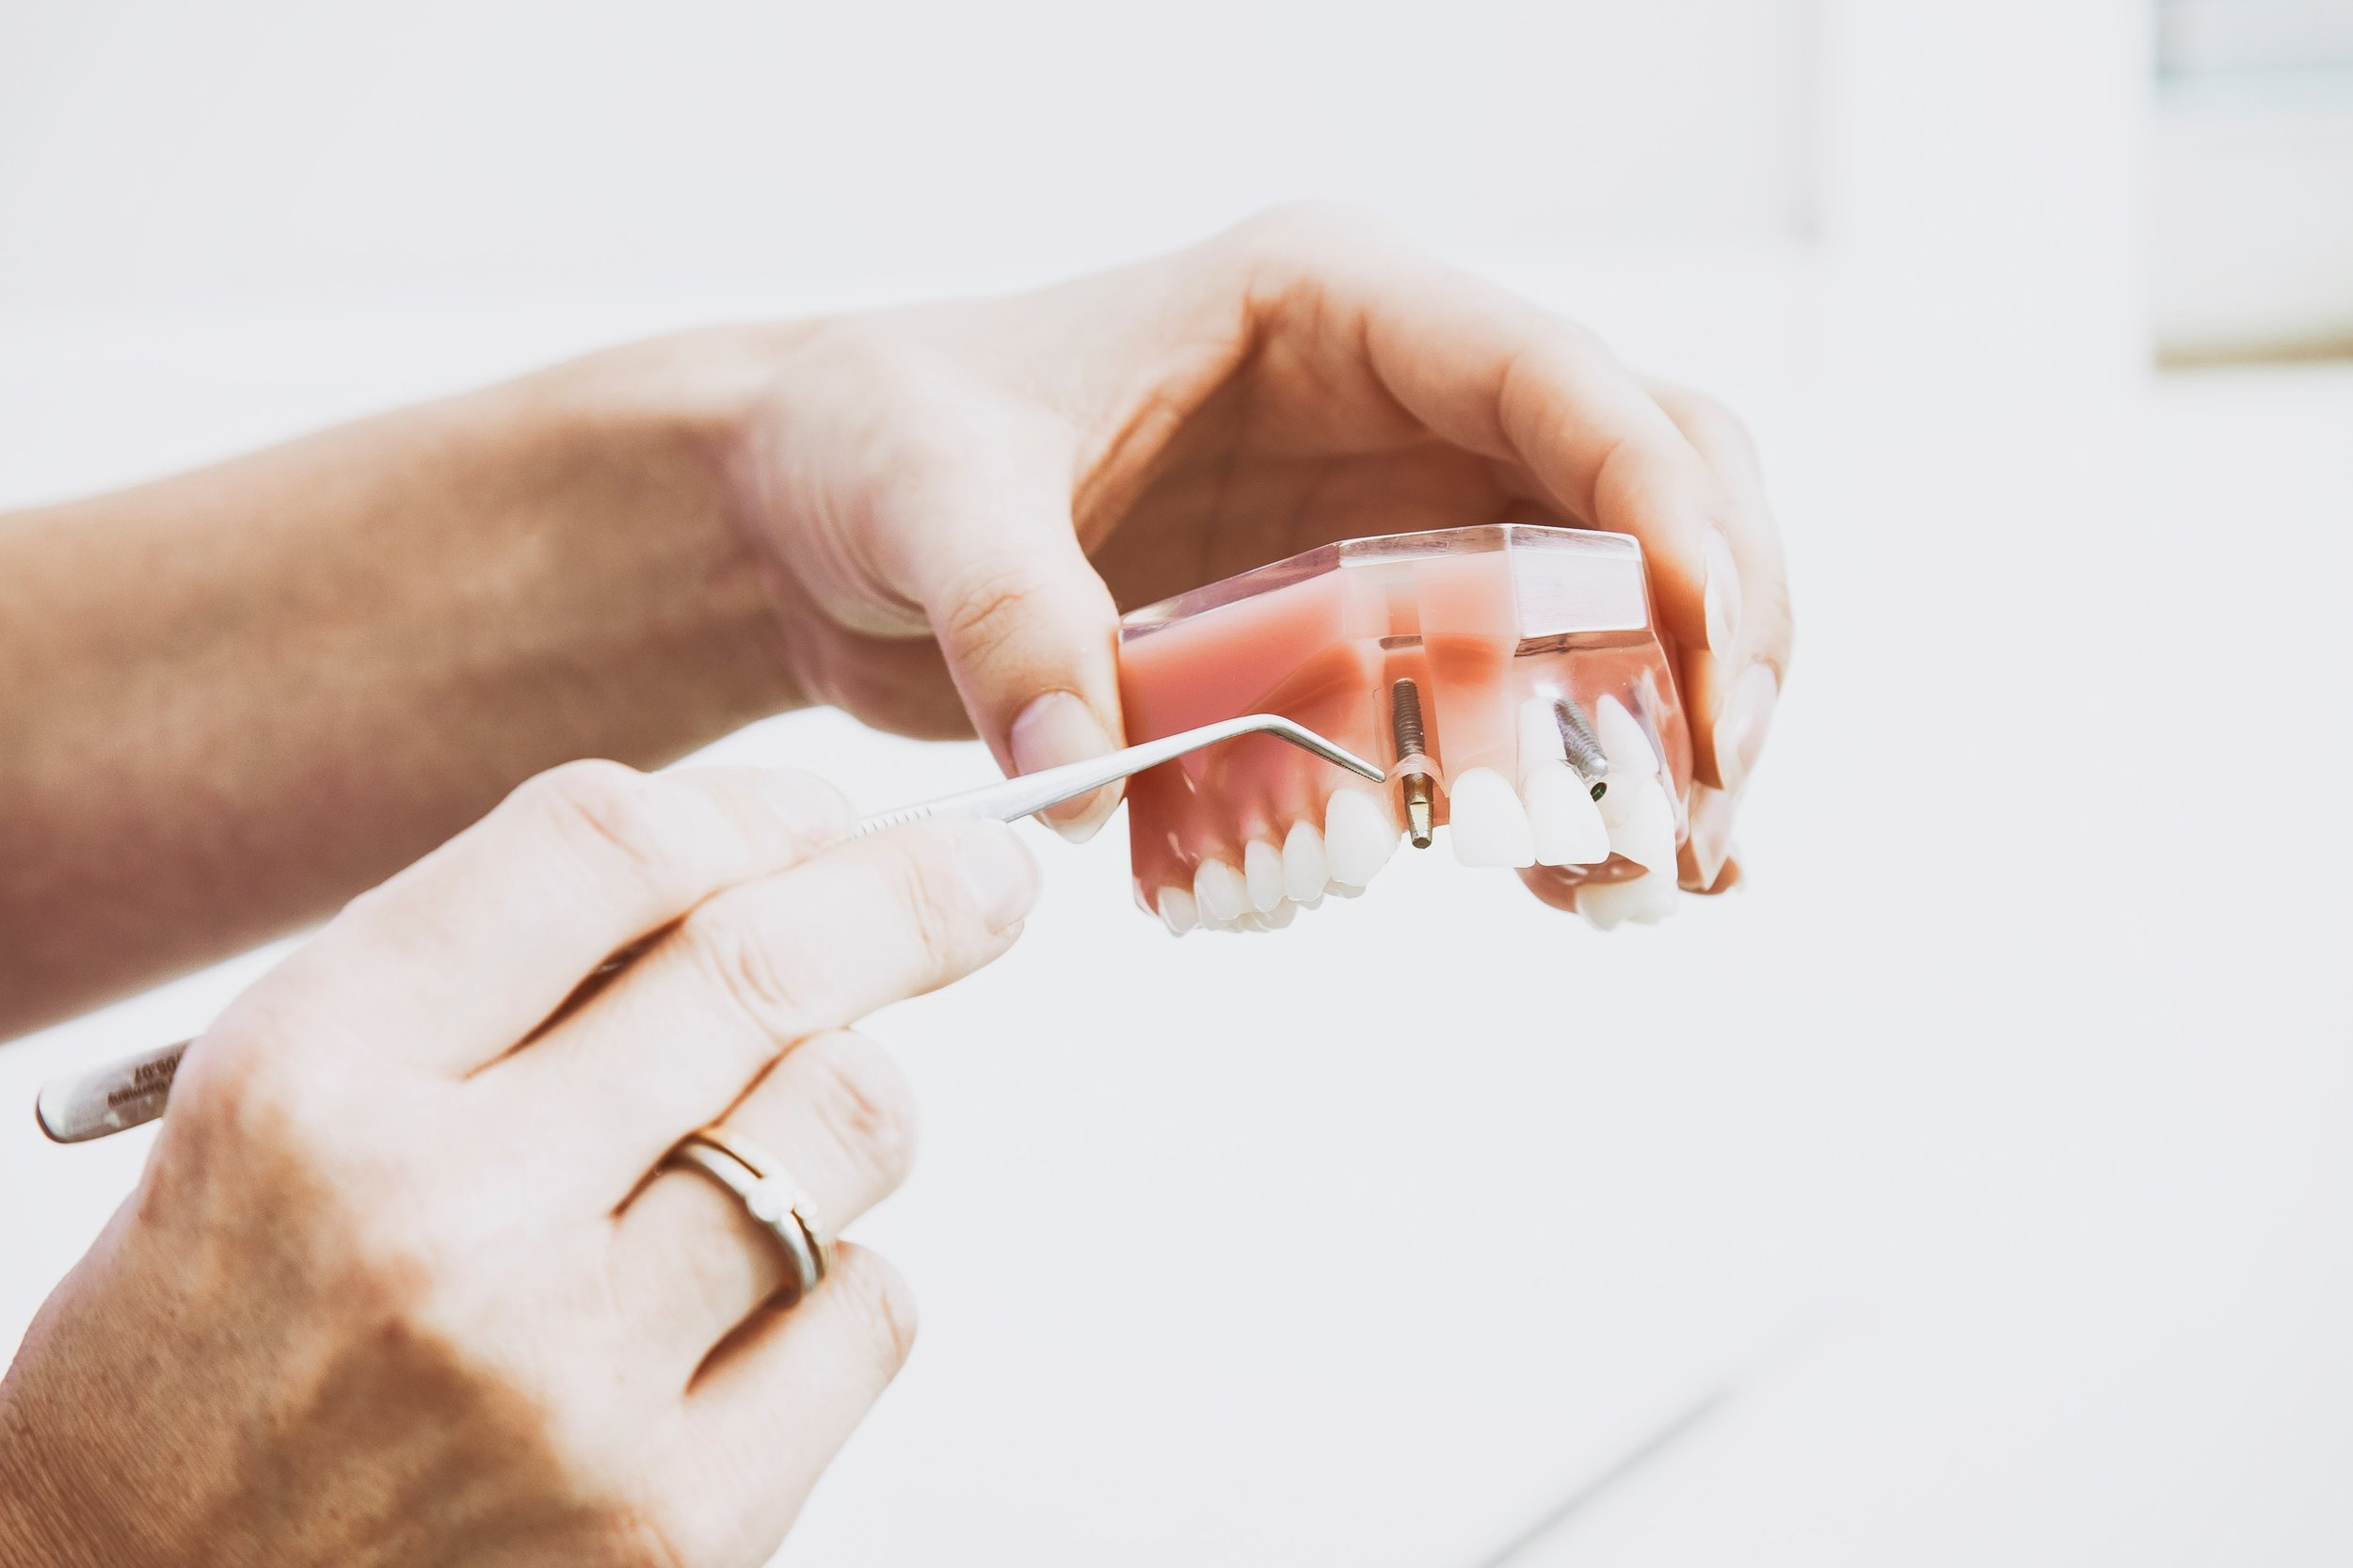 The Expert Care of Periodontists - Periodontists are uniquely qualified to treat a disease of the gum tissue and underlying bone in the mouth. With three additional years of specialized training after dental school, periodontists are masters of the treatment skills necessary for predictable and successful periodontal disease treatment.